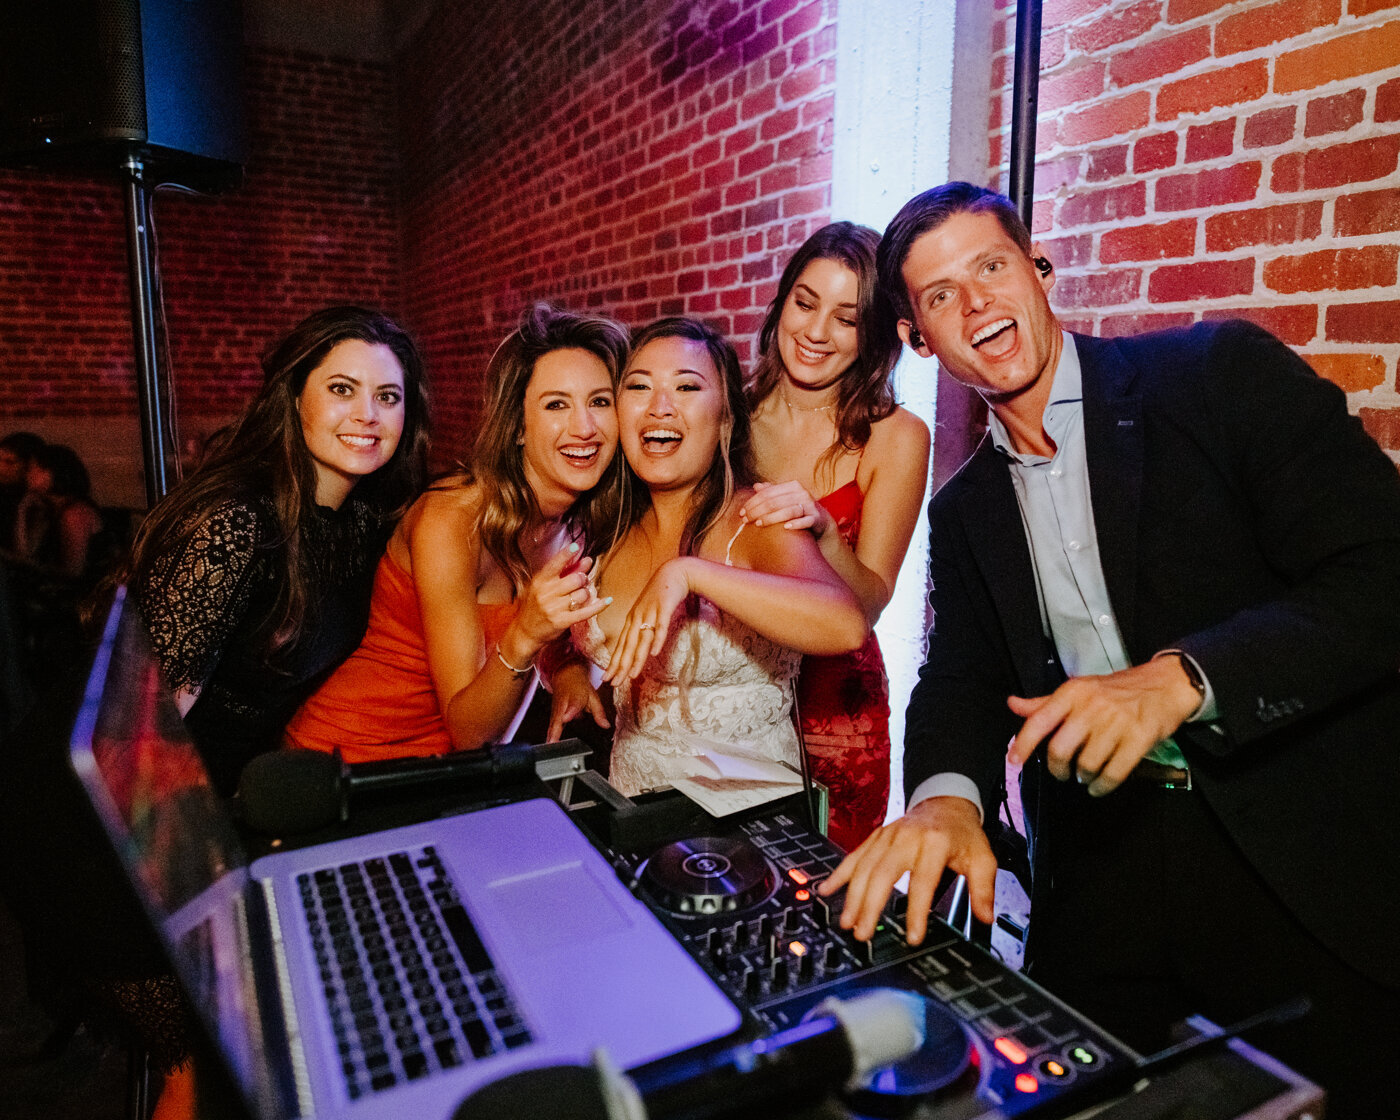 Our most popular services in the Downtown San Diego area are: Wedding DJ /MC,Wedding Guitarists, and Uplighting for Receptions, Cocktail Hours, and Wedding Receptions -